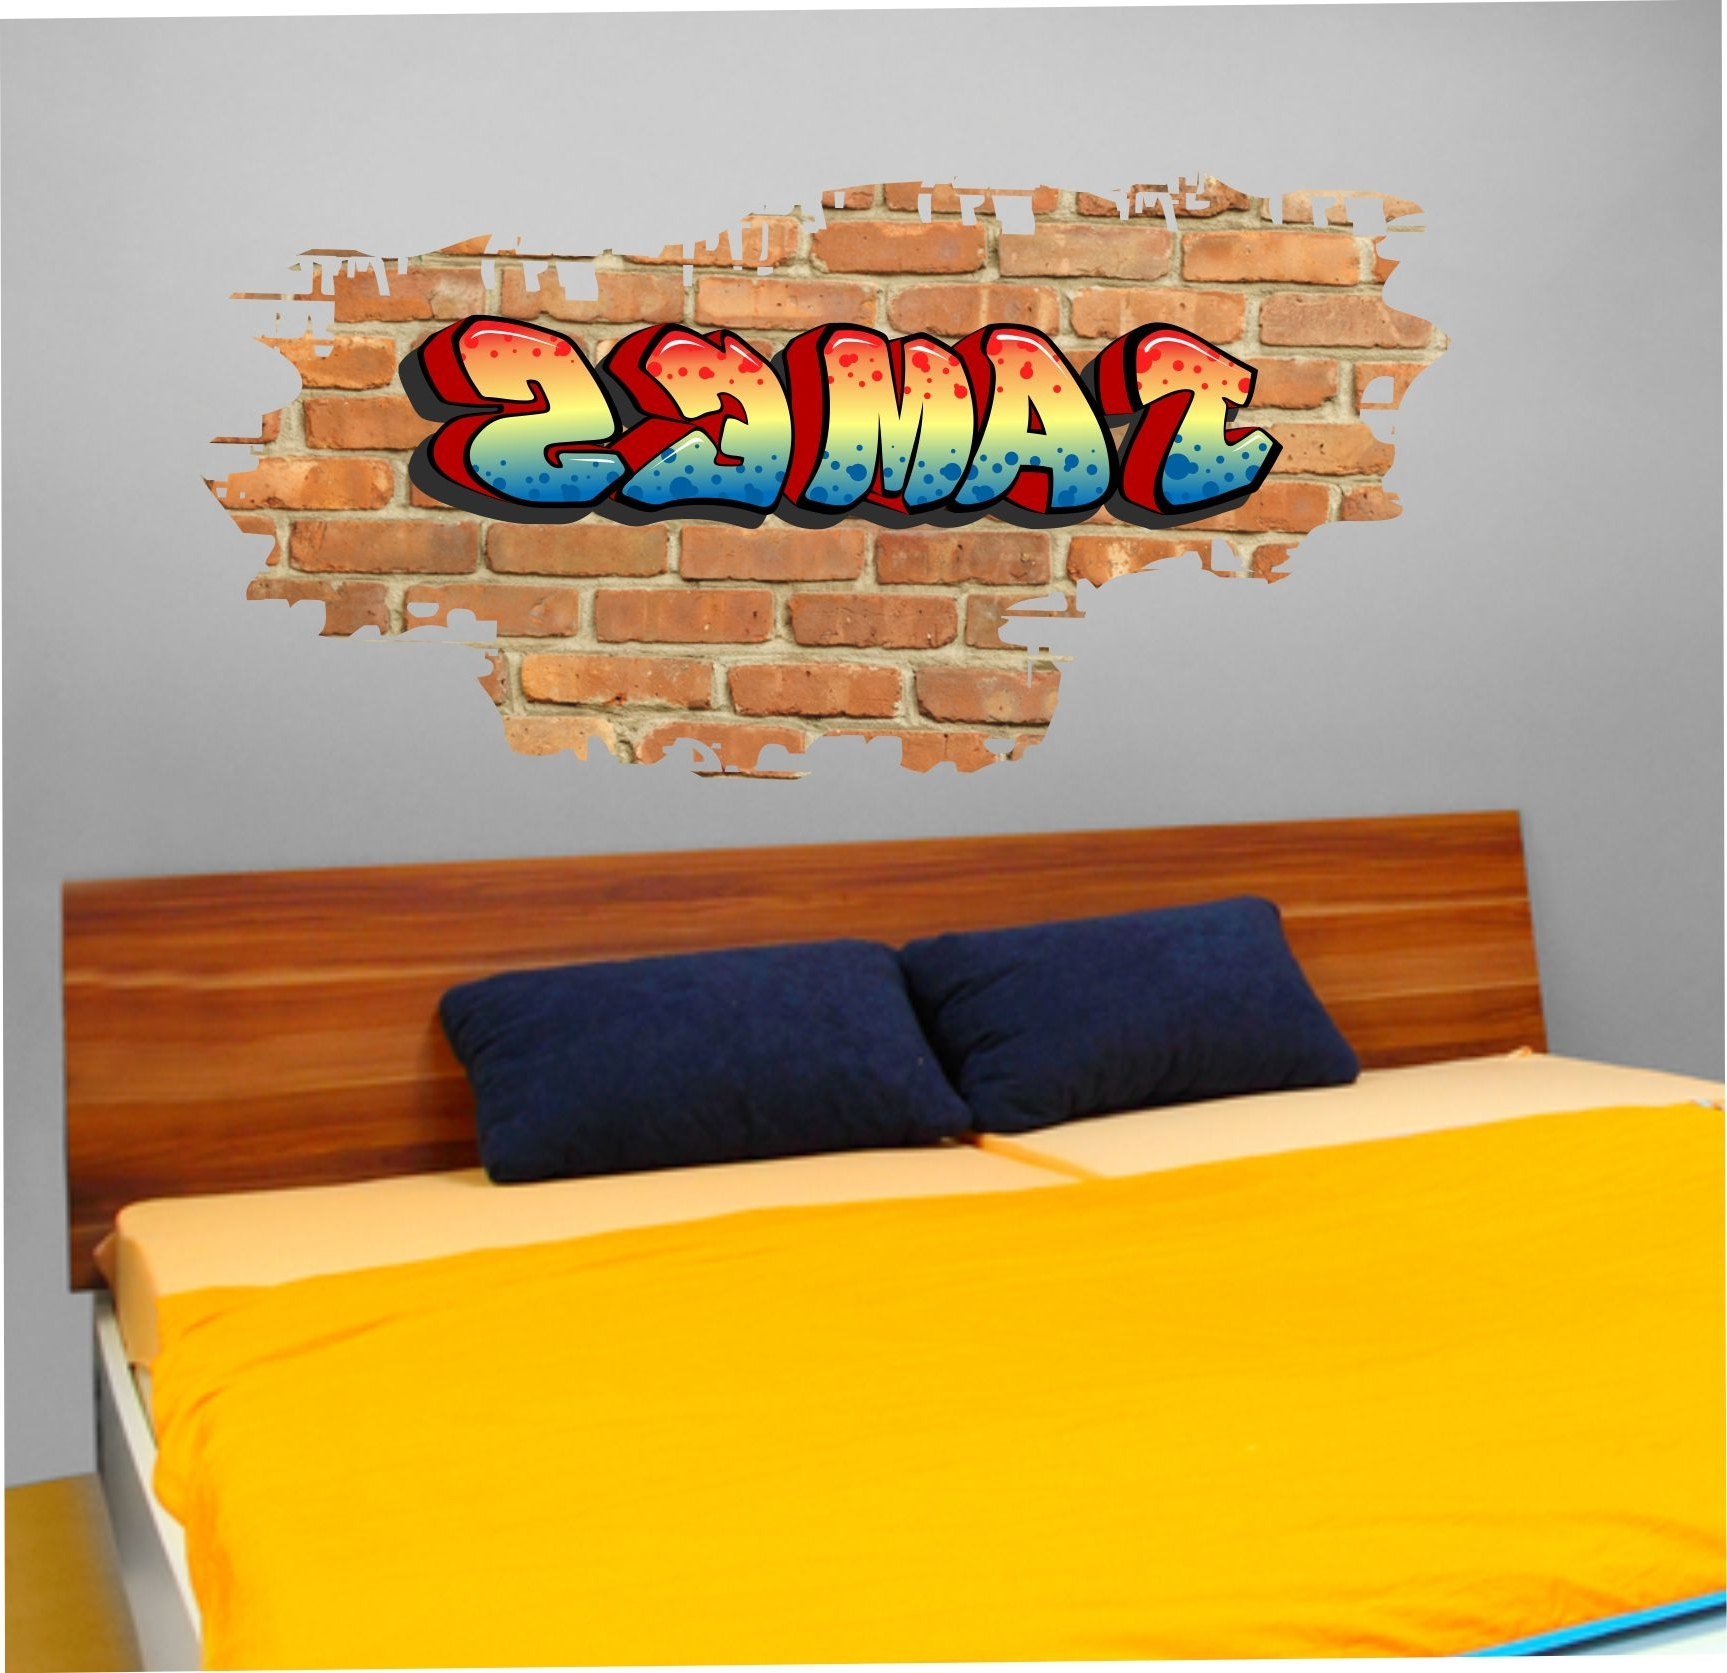 01 Personalised Graffiti Brick & Name Wall Sticker Regarding Personalized Graffiti Wall Art (Gallery 2 of 15)